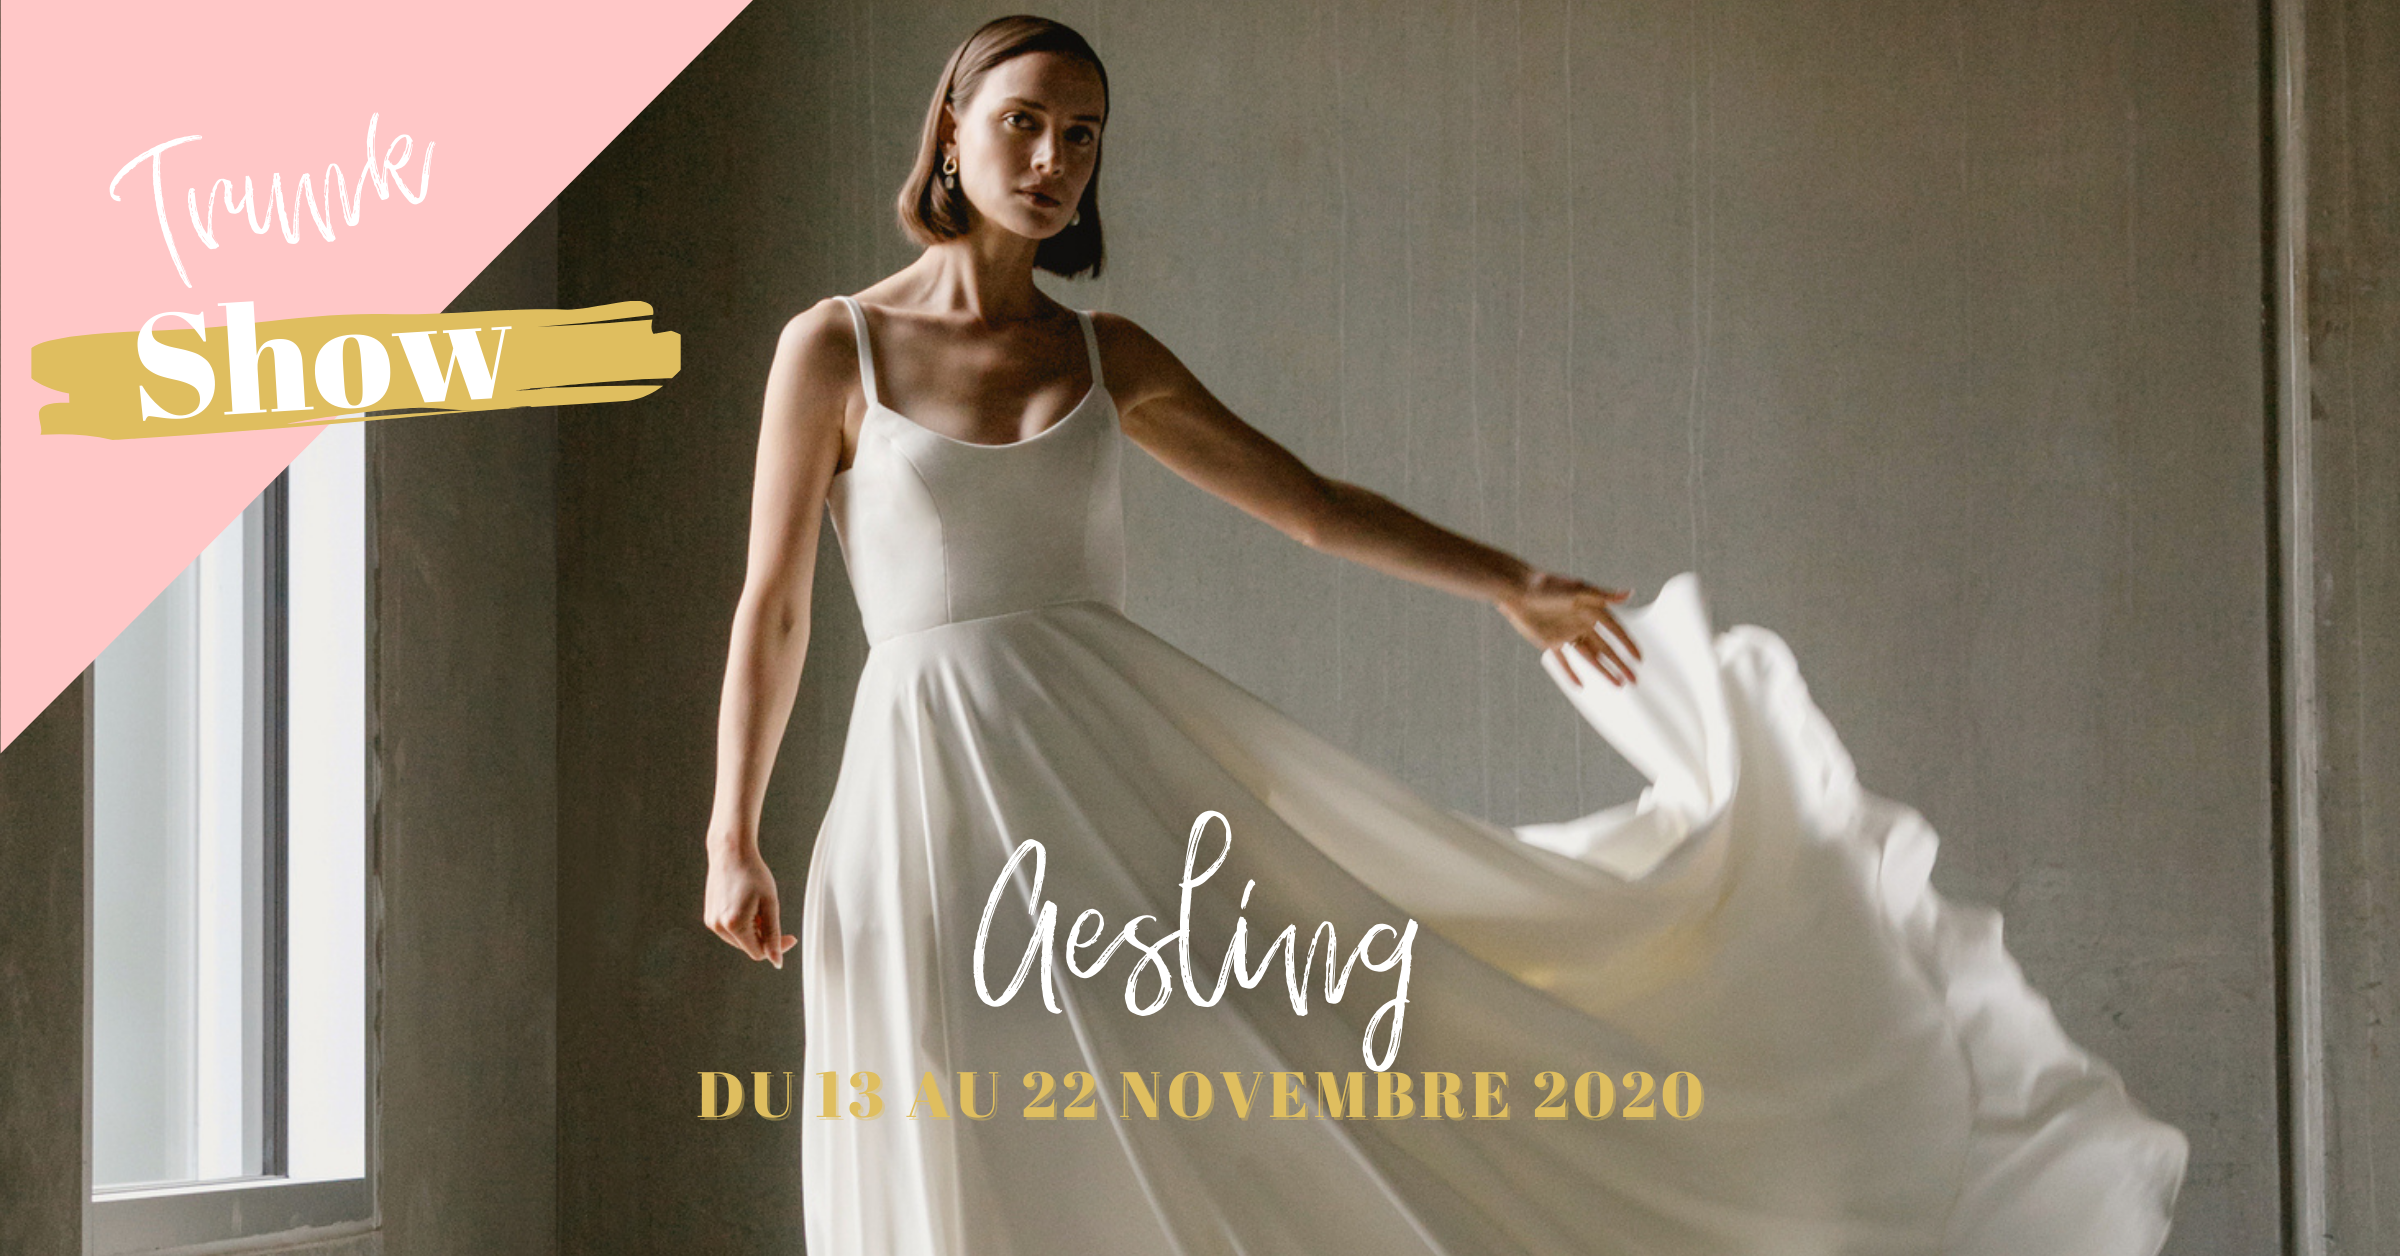 Aesling from 13th to 22nd November 2020